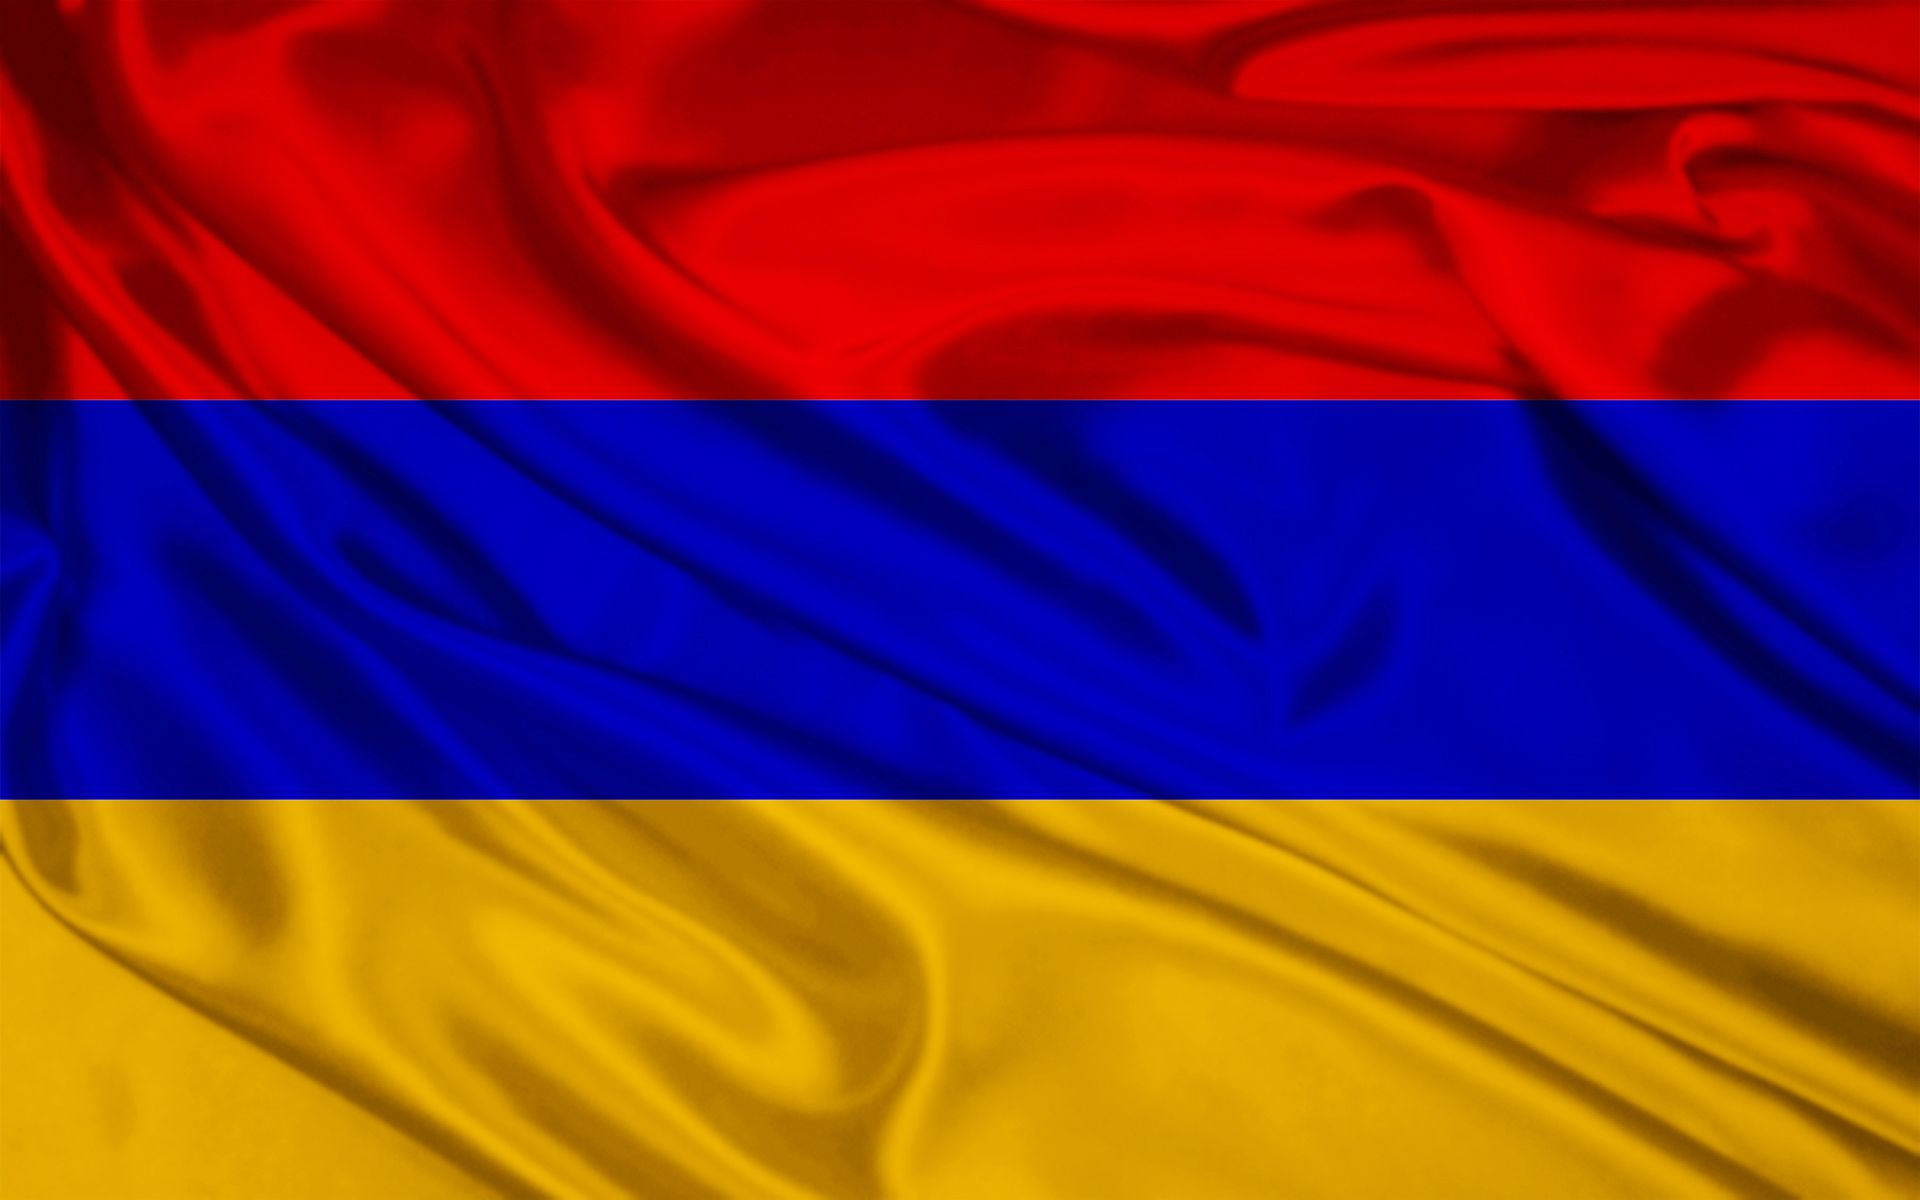 Armenia Flag HD Desktop wallpaper images and photos girl 1920x1200